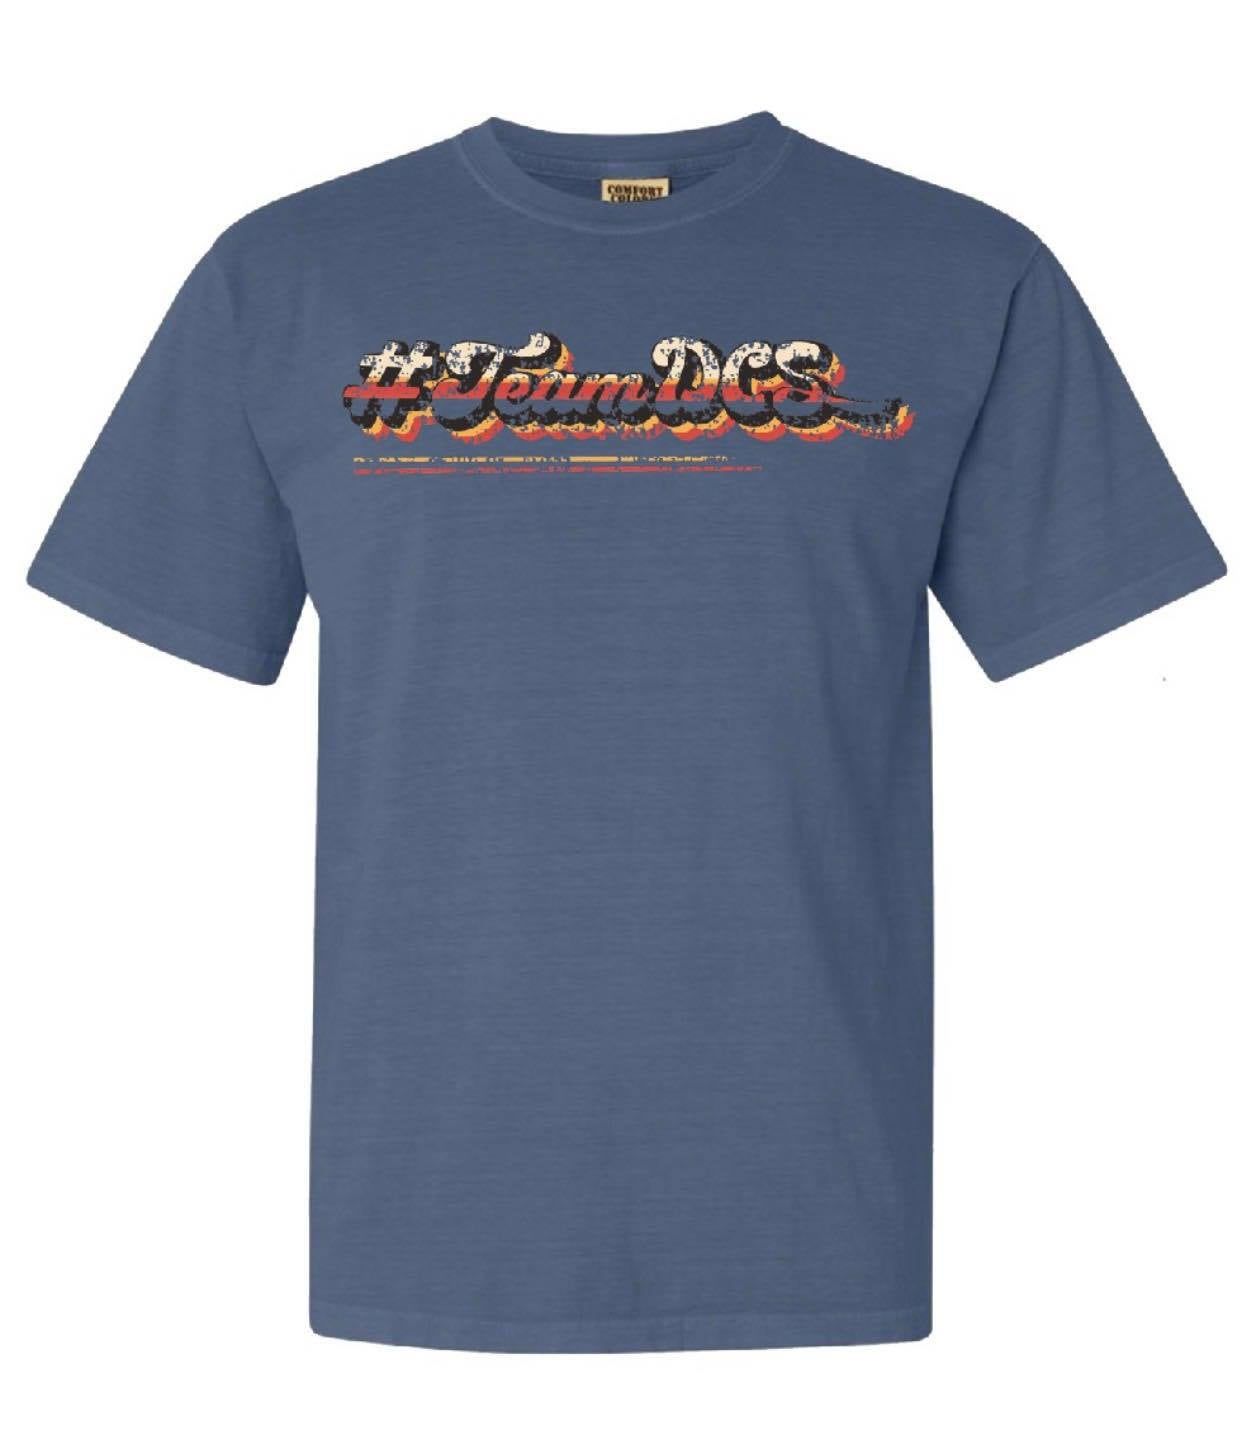 Image of #TeamDCS Vintage Shirt - Short Sleeve Comfort Color